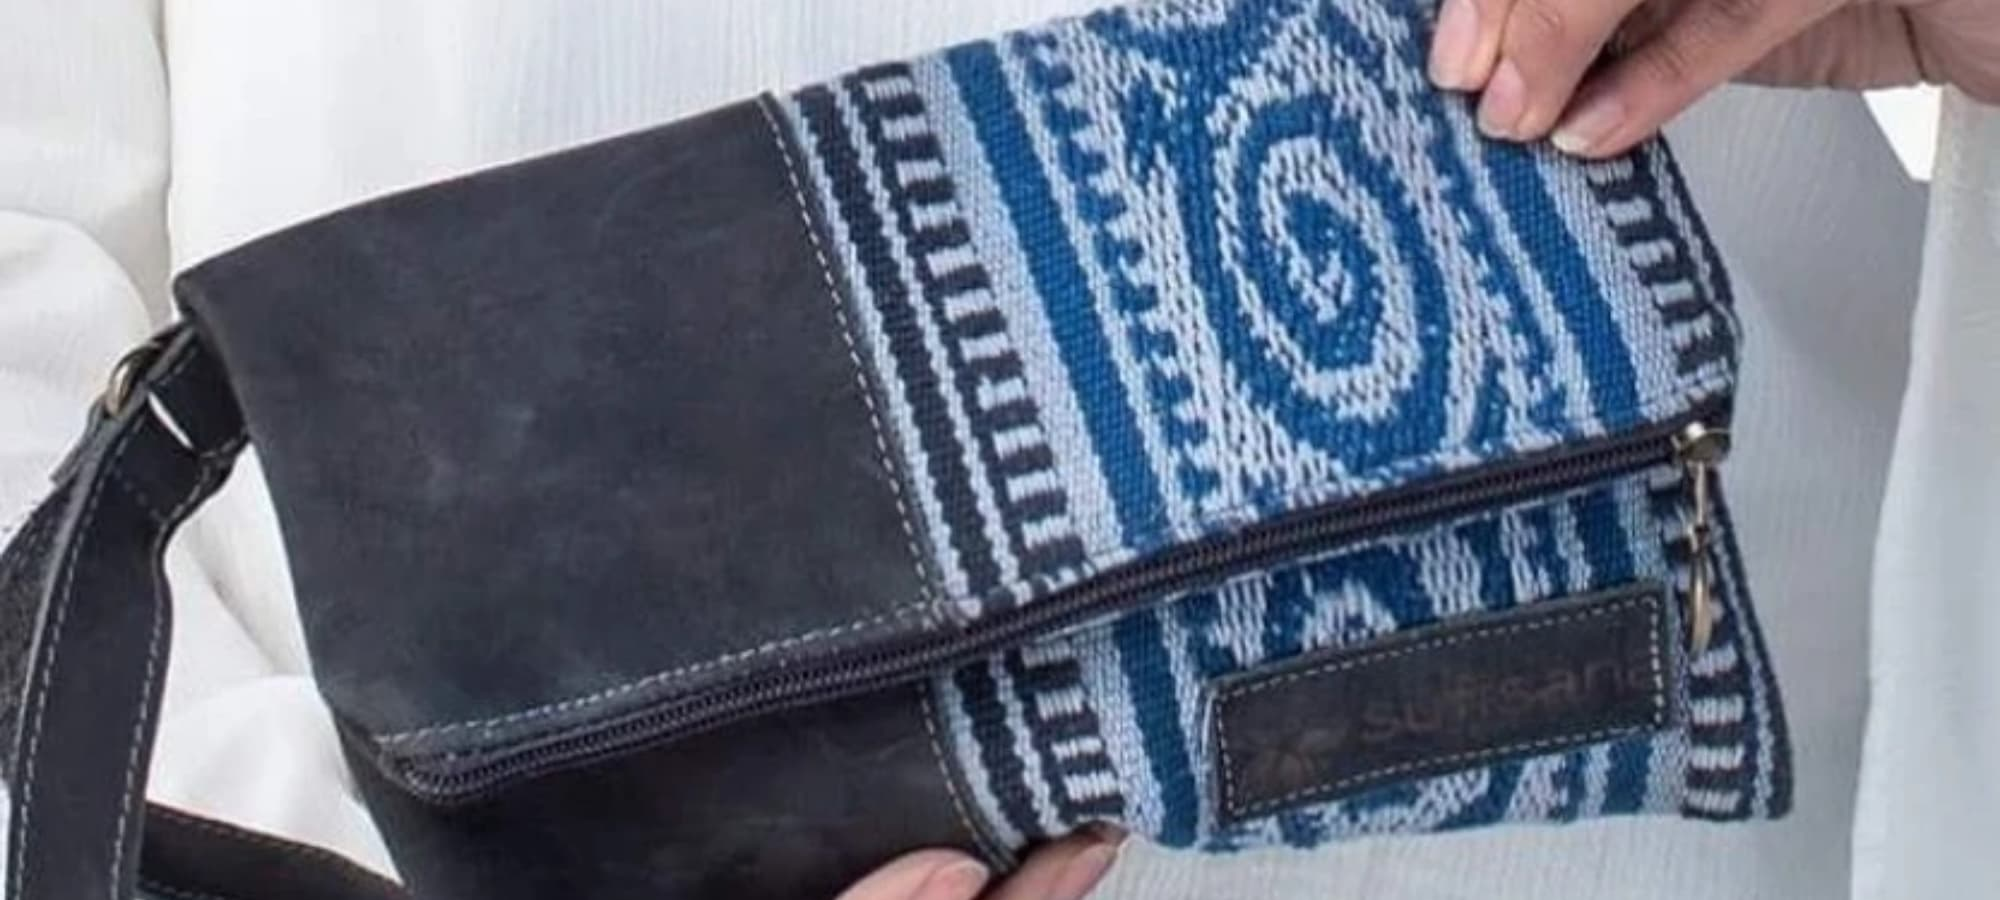 SutiSana handbag made by rescued sex trafficking workers